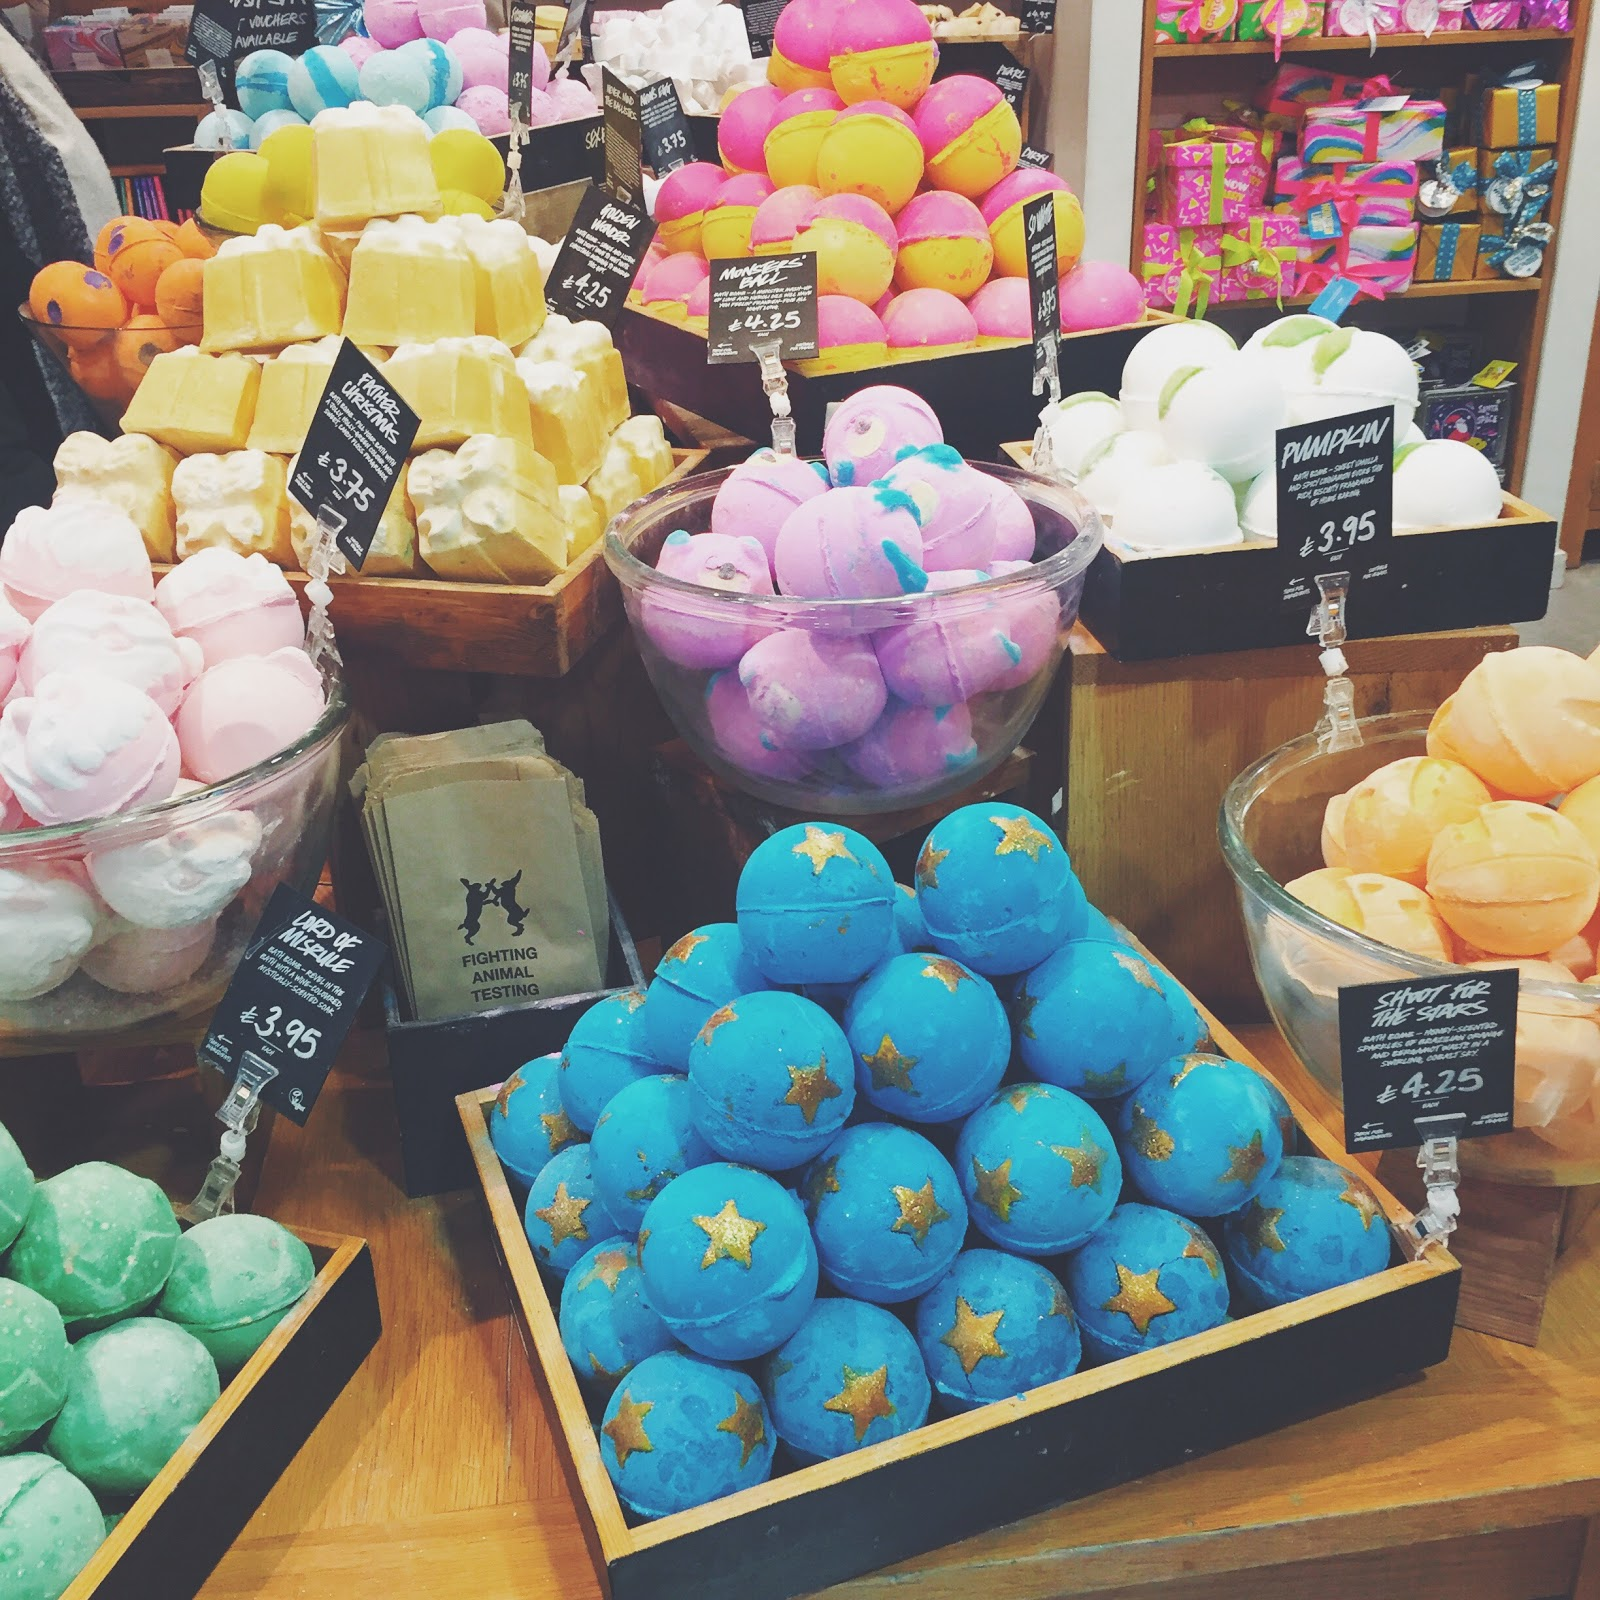 lush bath bombs autumn winter collection